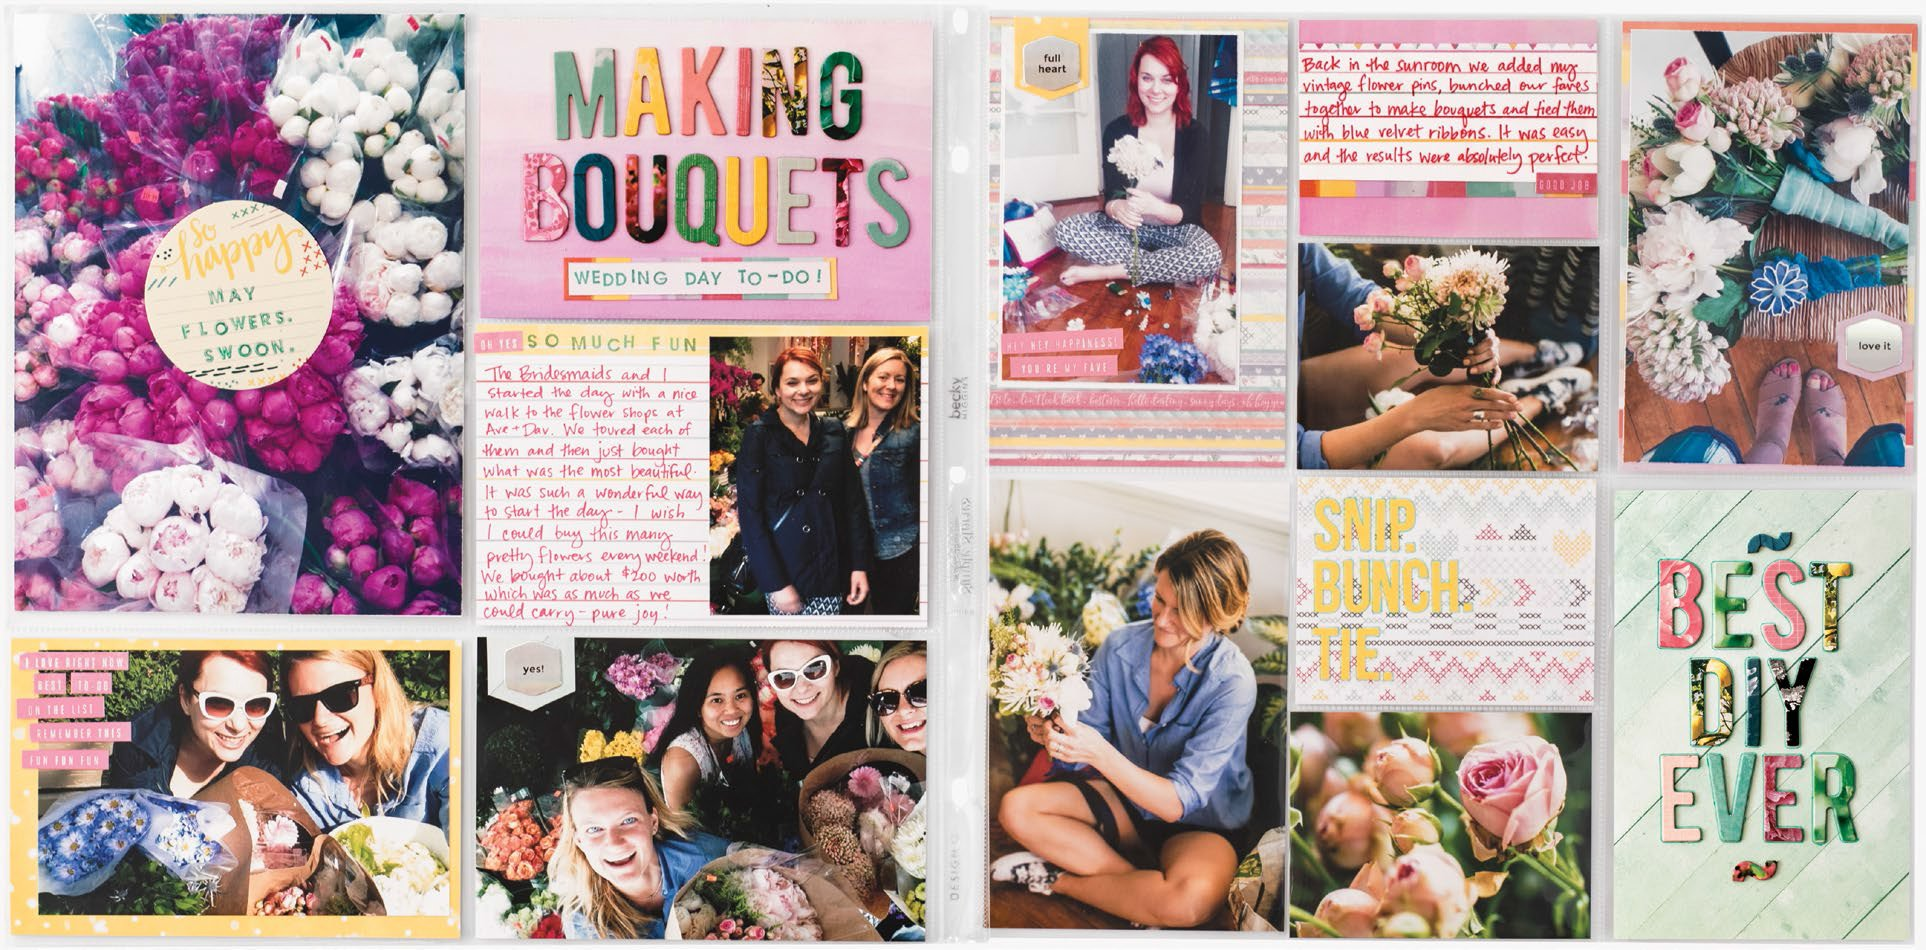 Best DIY Ever by Melanie Godecki for Scrapbook & Cards Today